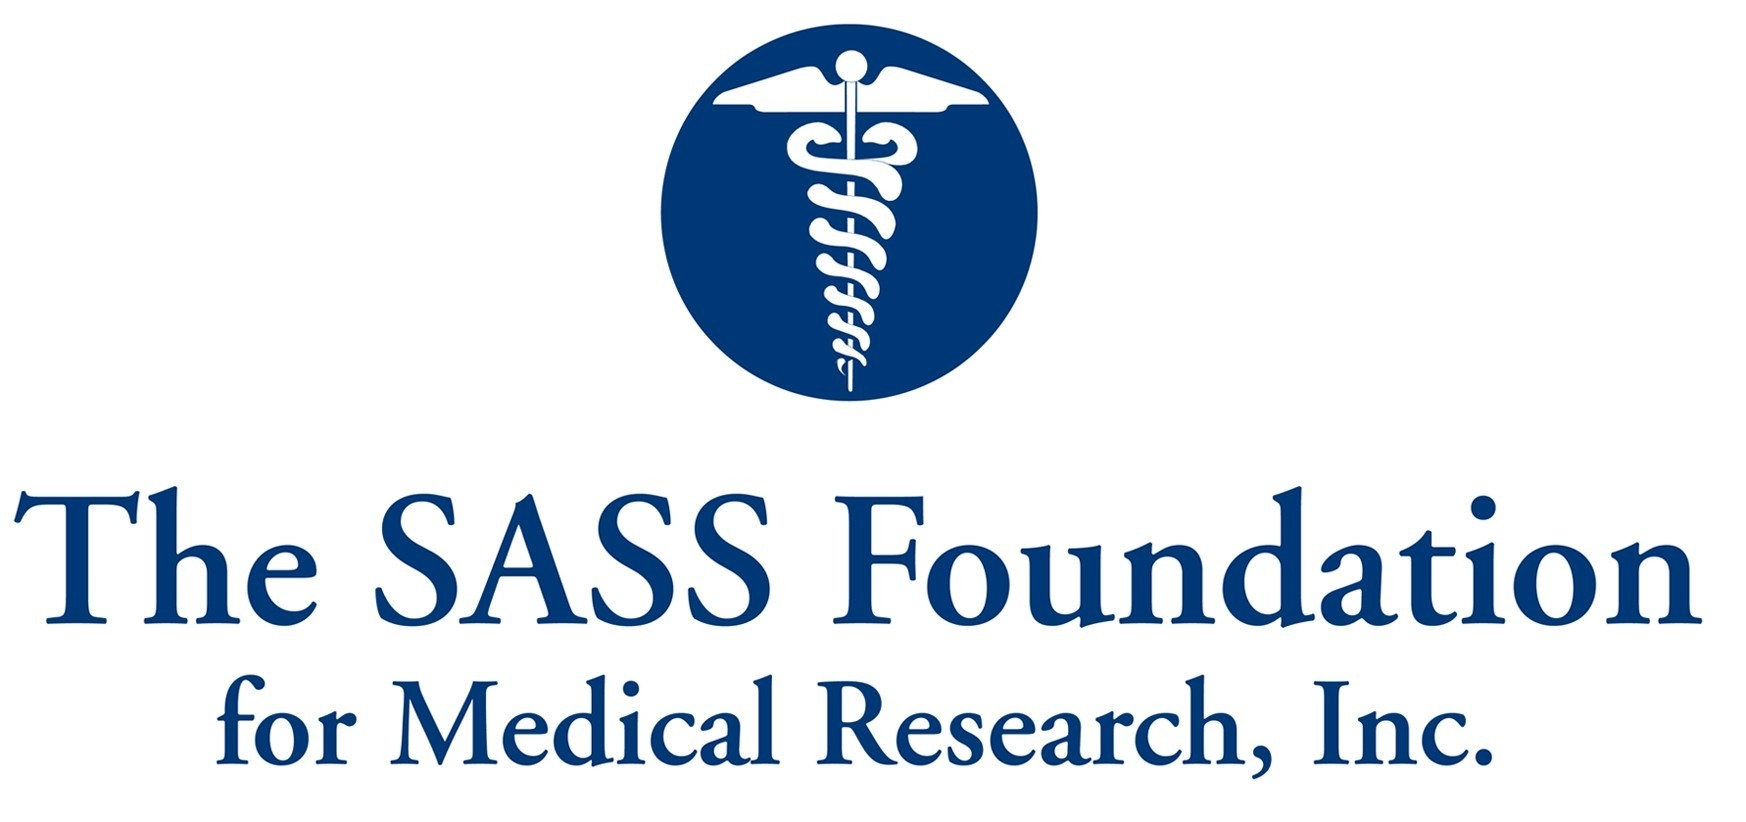 Supporting promising research - Since 2016, we have partnered with the SASS Foundation for Medical Research, Inc. to jointly fund up to $2 million in Hairy Cell Leukemia research grants and fellowship awards through 2021.